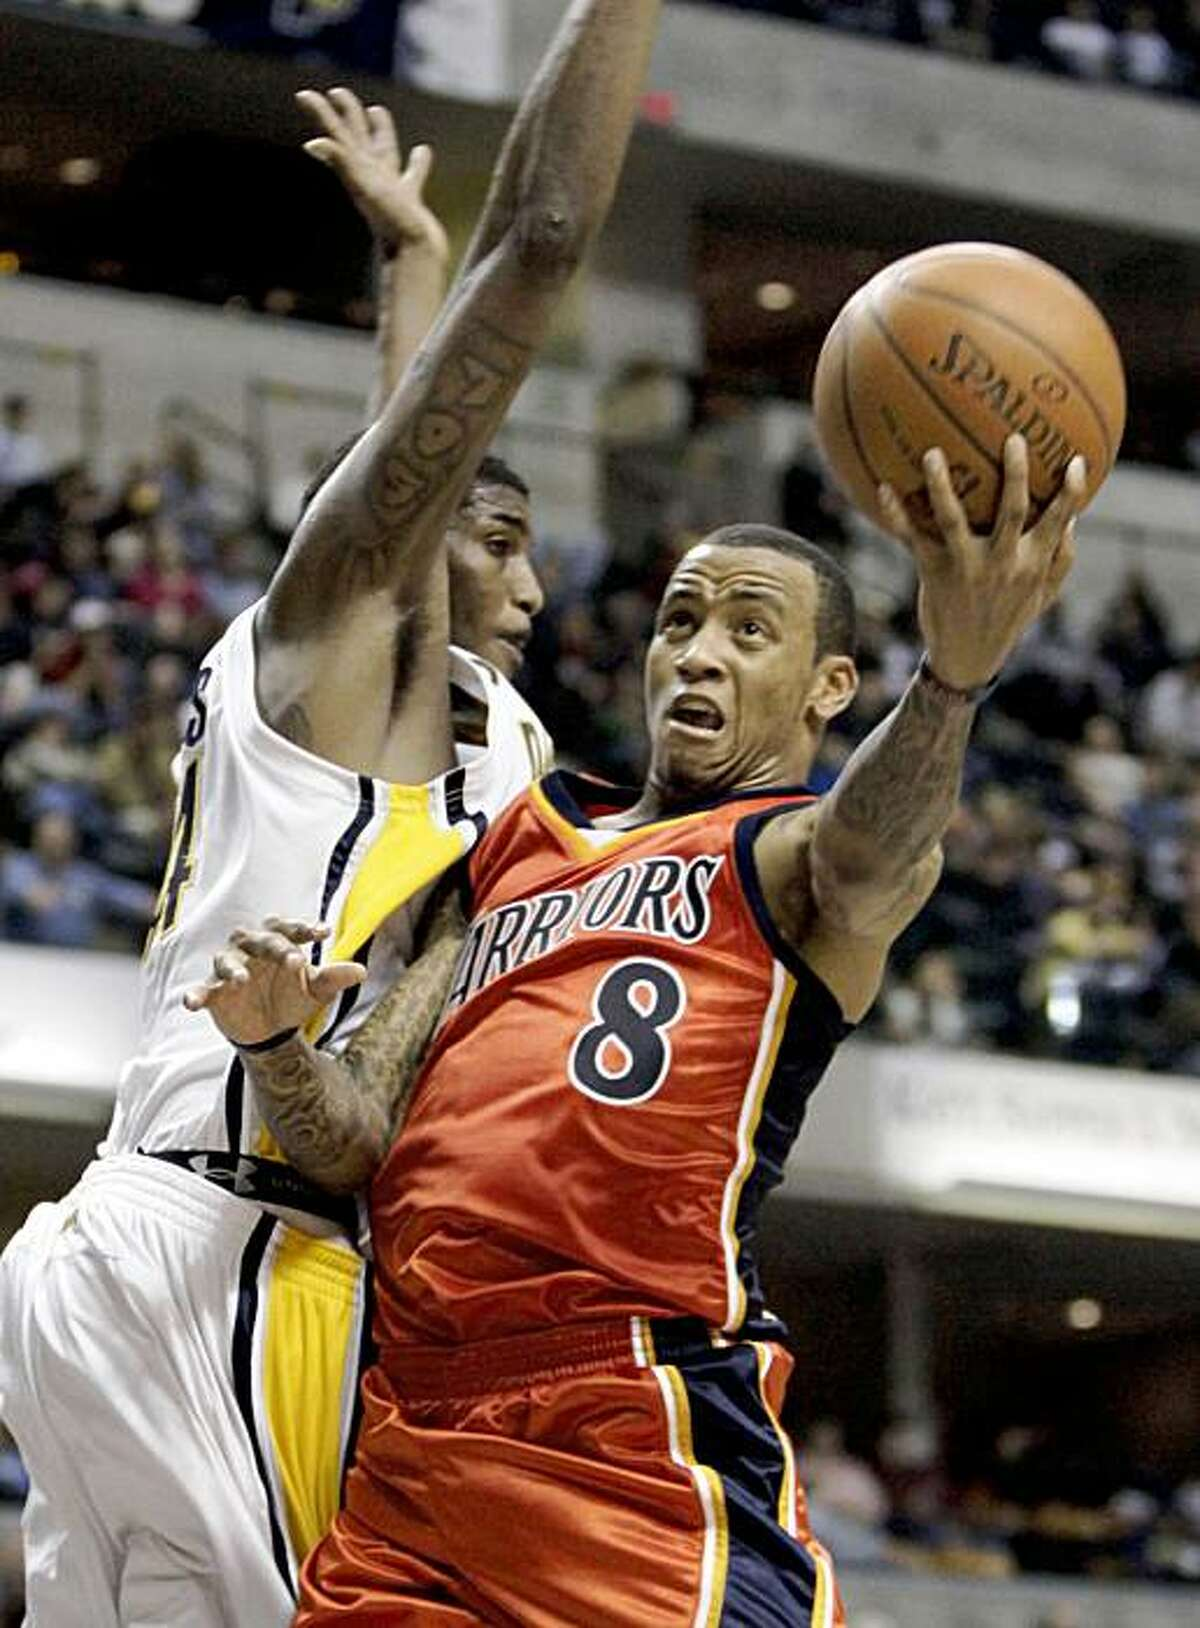 Golden State Warriors guard Monta Ellis, right, moves to the basket around Indiana Pacers center Solomon Jones during the second half of an NBA basketball game in Indianapolis, Wednesday, Nov. 11, 2009. The Pacers won 108-94. (AP Photo/AJ Mast)